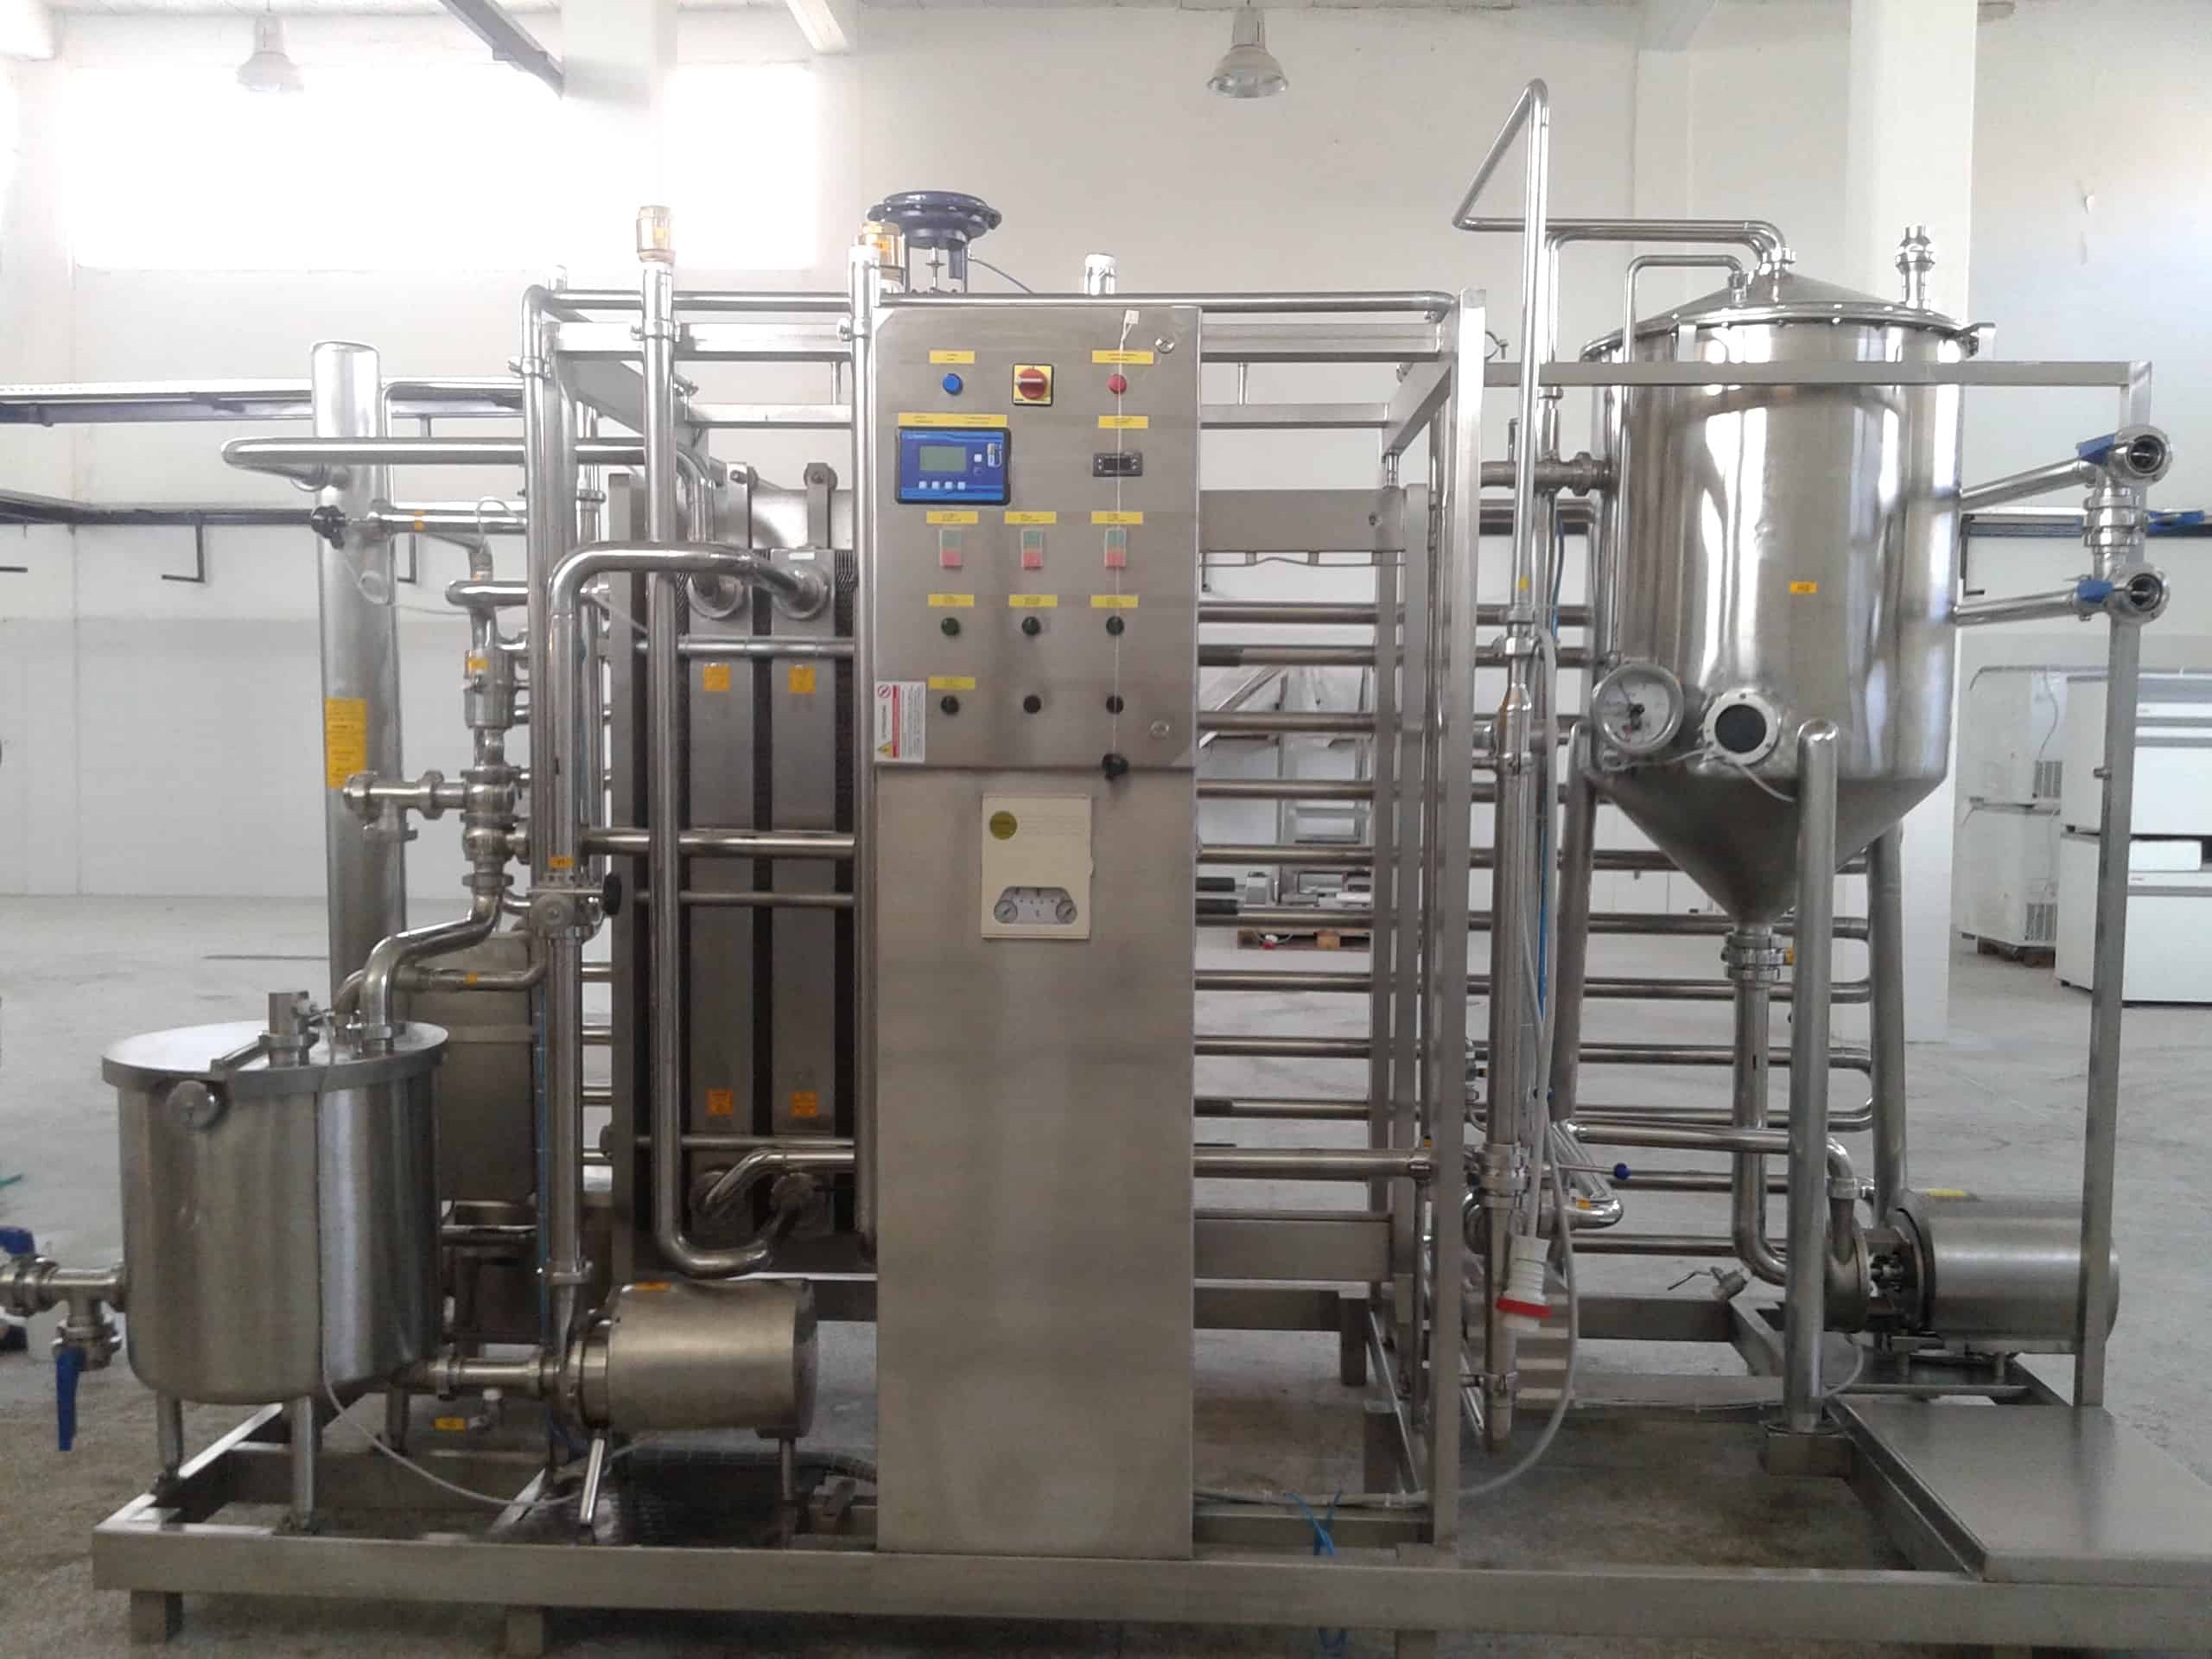 NEW Rizzi Inox 10,000 Liter/Hr Skid-Mounted Pasteurizer, with Plate Frame Heat Exchanger, Nested Holding Tubes, Flow Diversion Valve, Balance Tank, (2) Centrifugal Pumps, S/S Control Cabinet with Digital Touch Pad Operator Interface, Associated Valves & Fittings, Plate Frame Heat Exchanger Equipped with 3-Divders, Product Heated from 4-36 Degrees Celsius